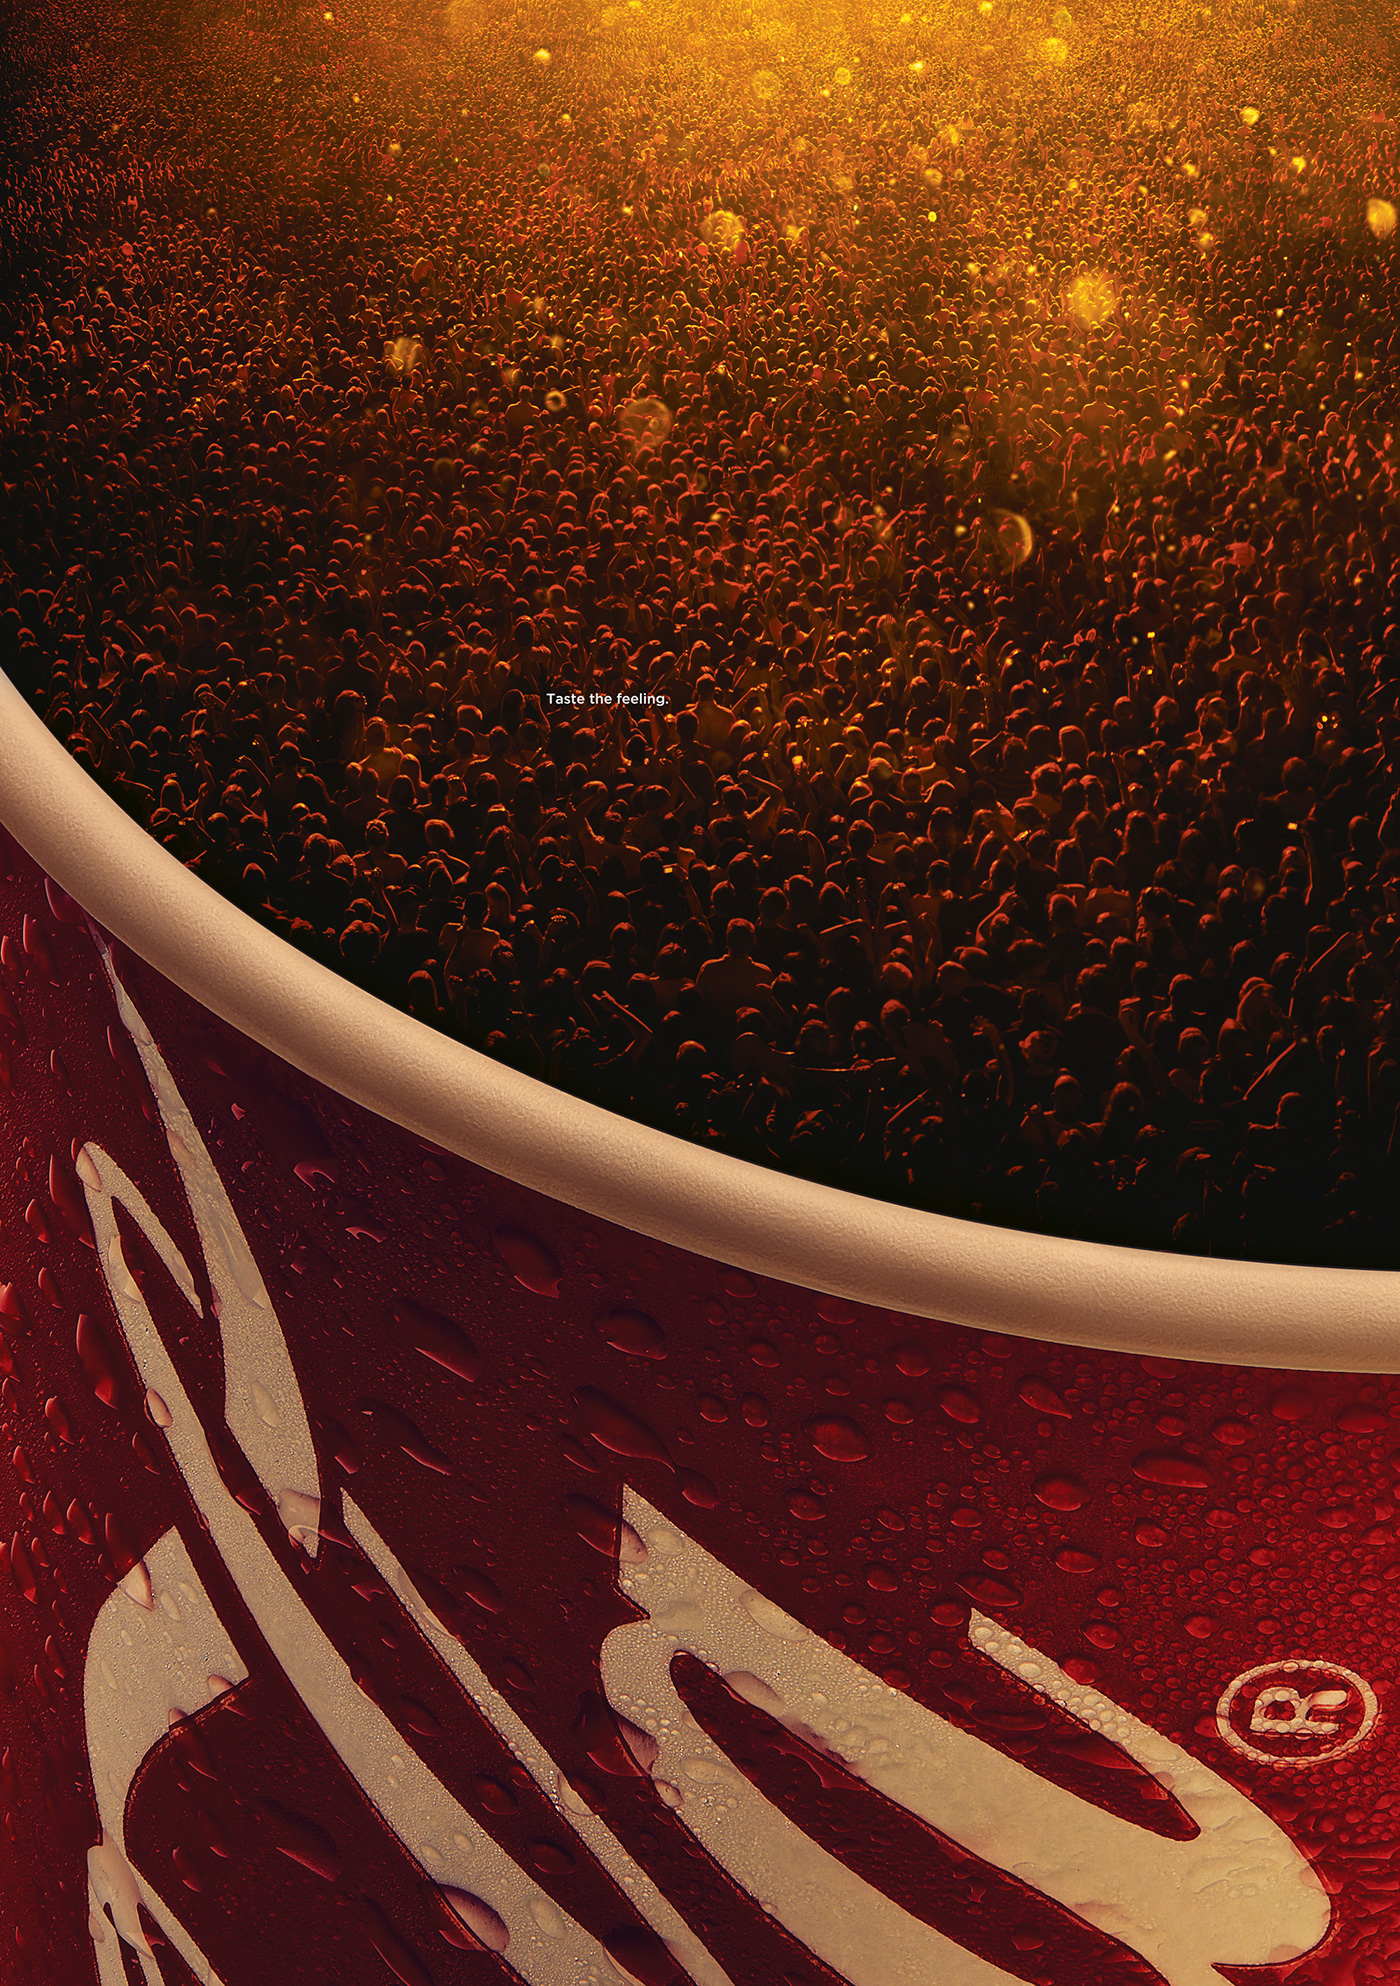 Coca-Cola Bubbles: Taste the feeling - 1